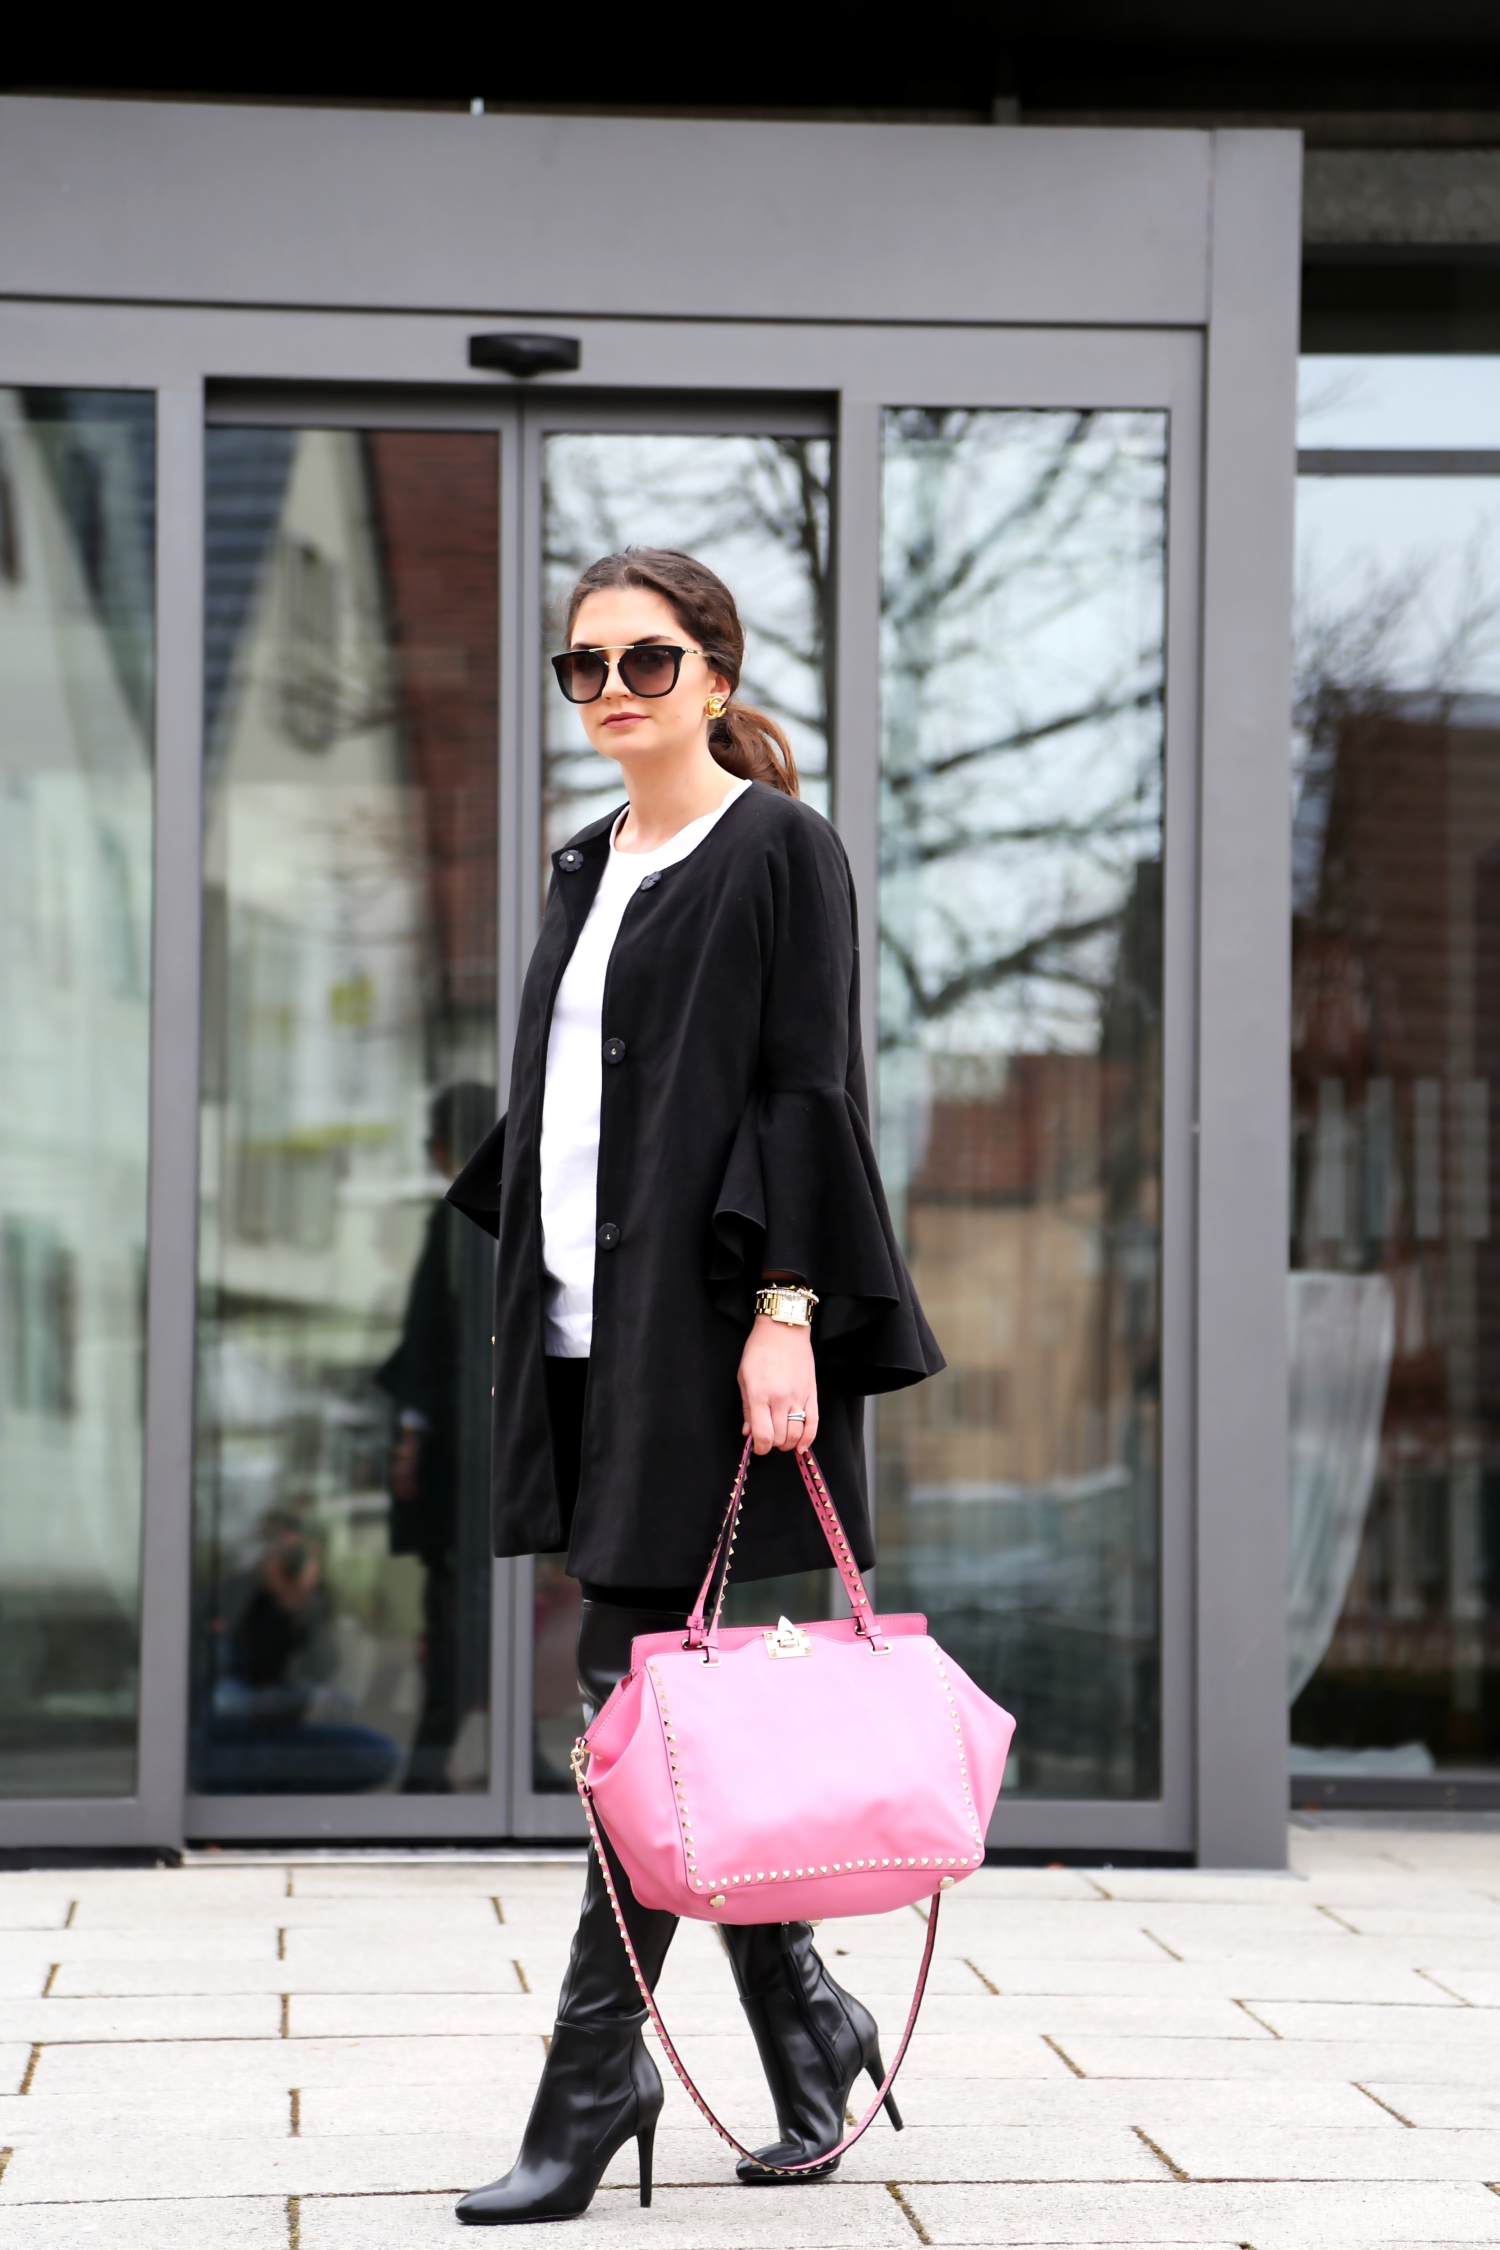 outfit-valentino-bag-prada-sunglasses-winter-look-overknees-fashionblogger